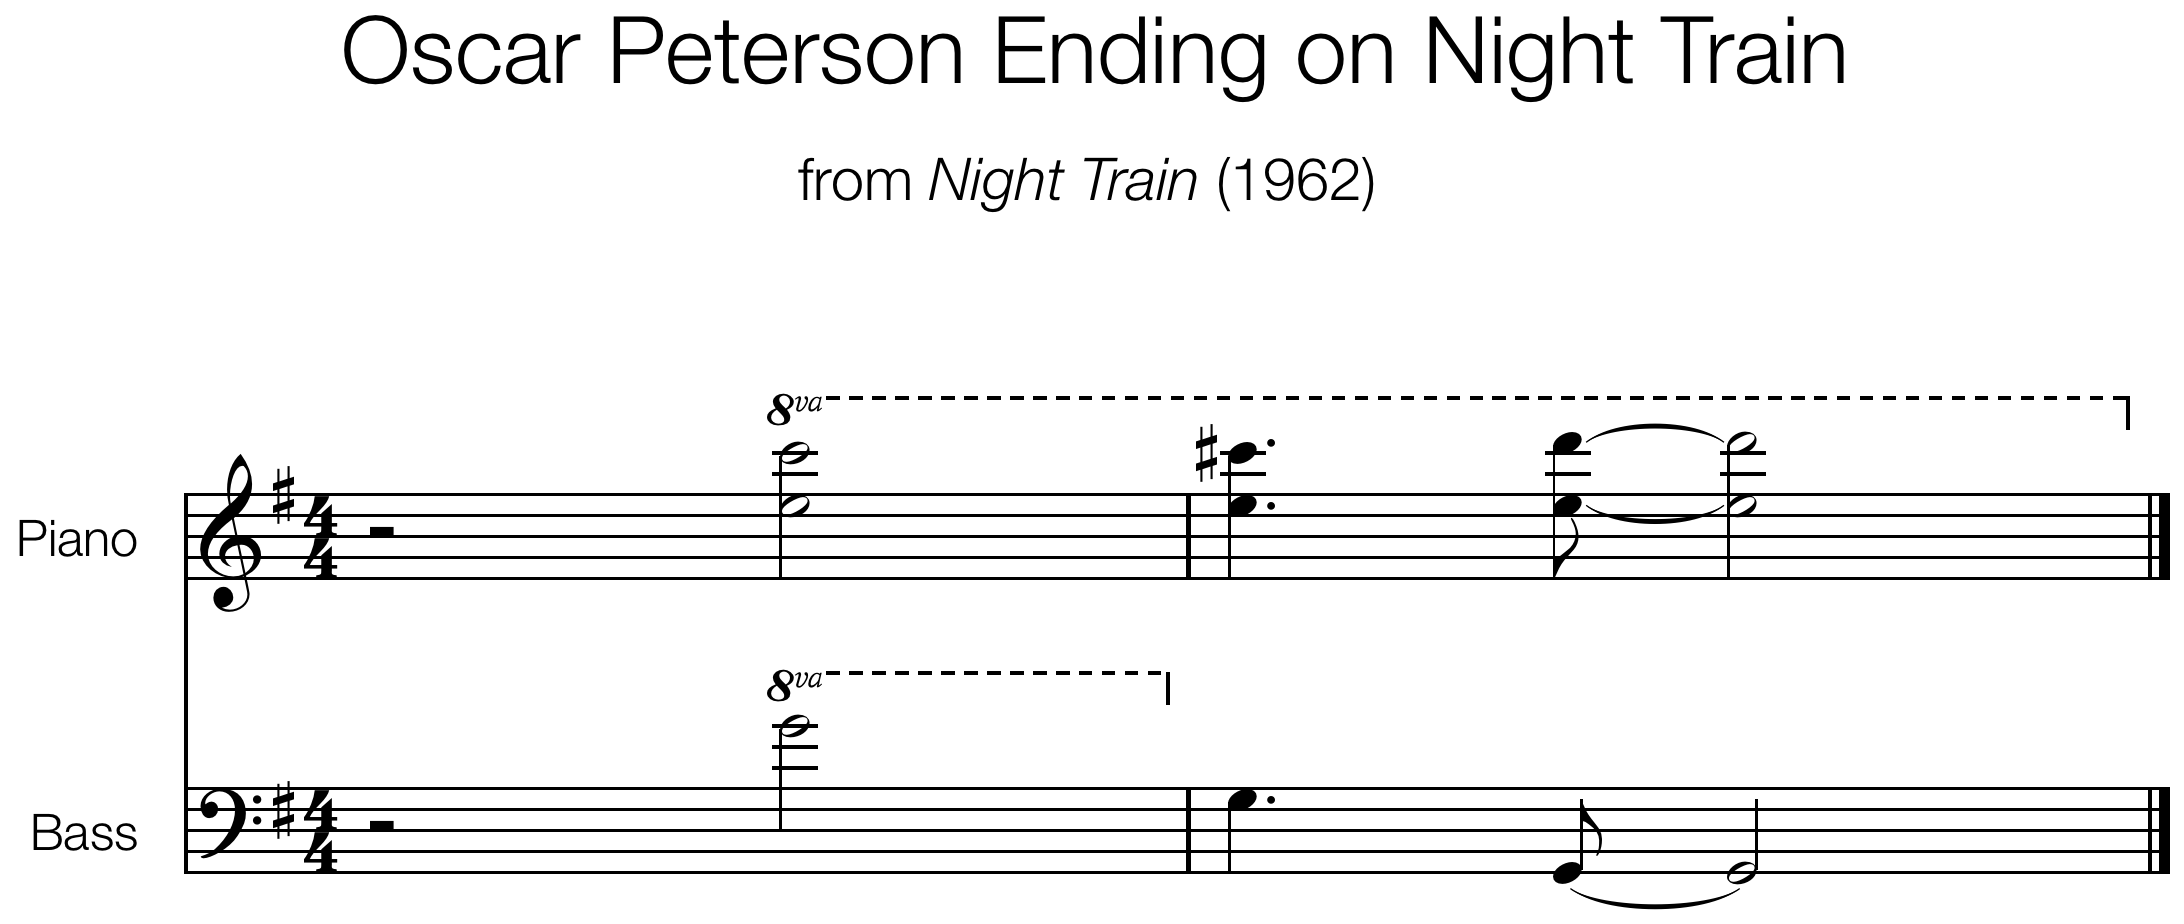 Oscar Peterson Ending on Night Train